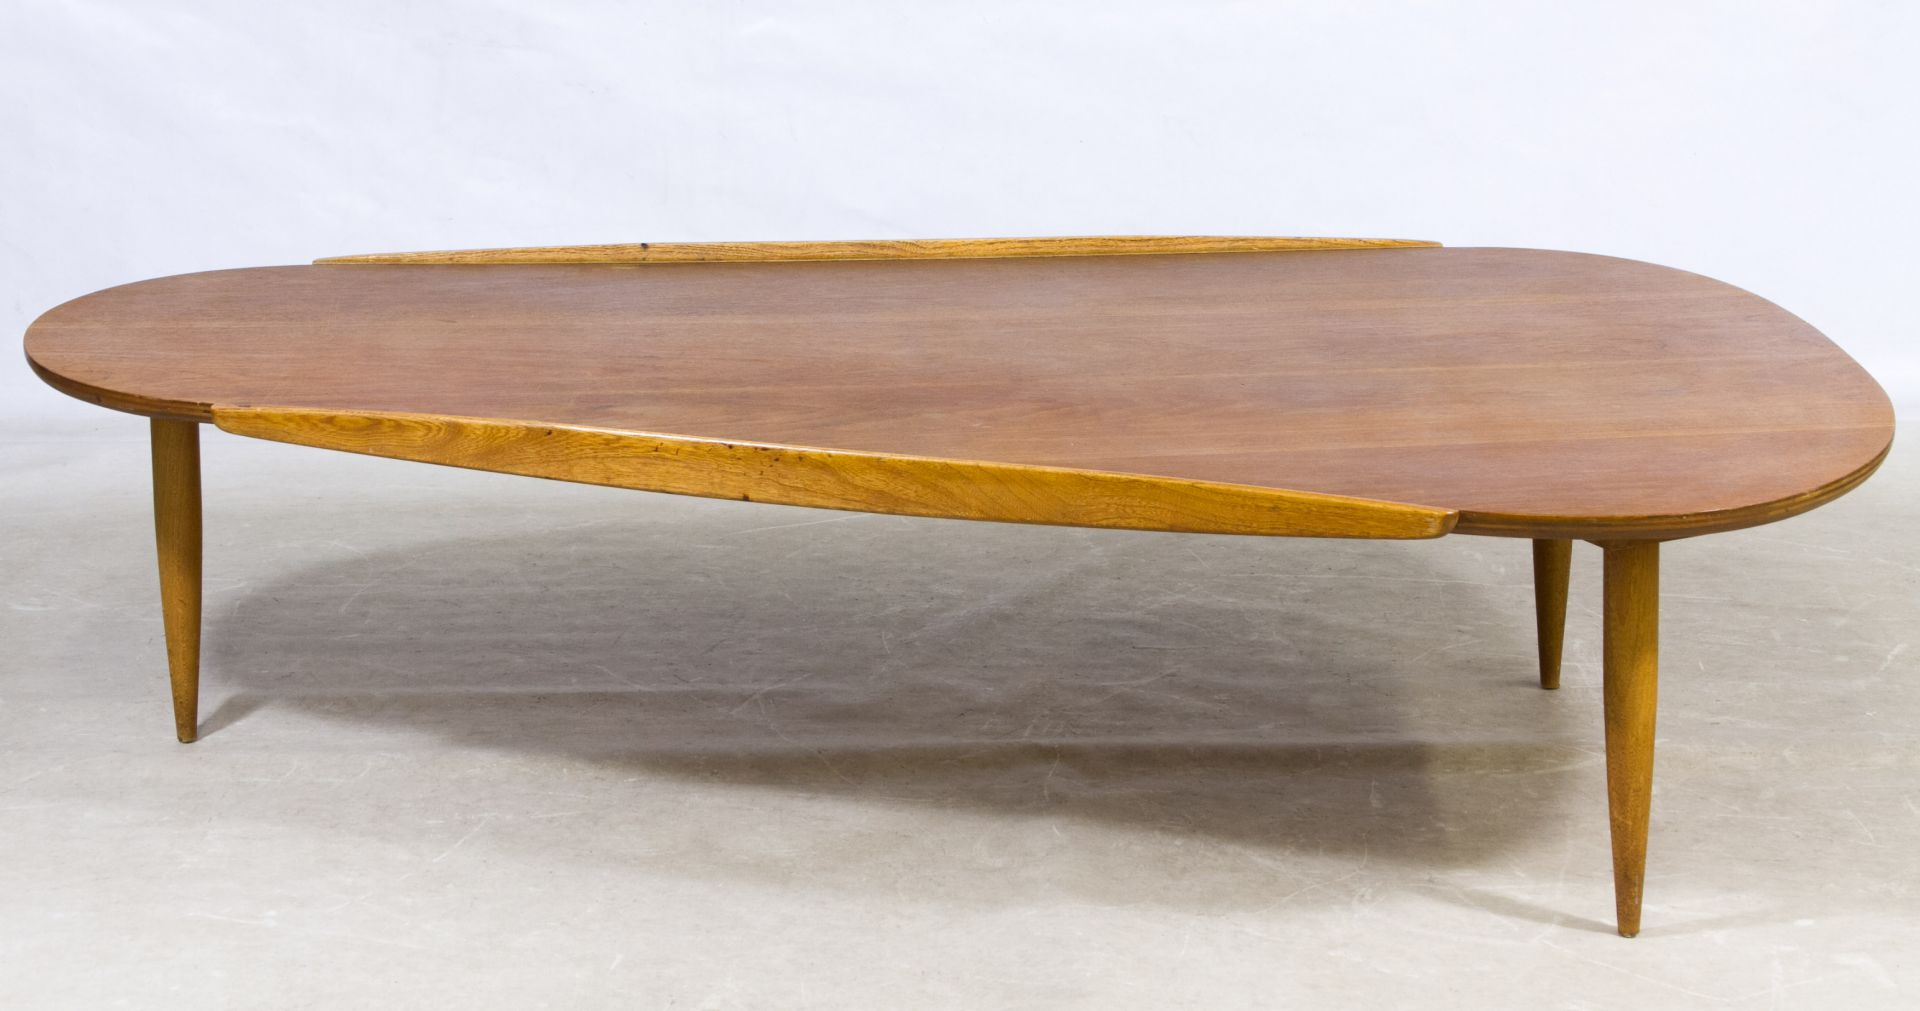 Lot MidCentury Modern Boomerang Coffee Table By Lane - Mid century modern boomerang coffee table